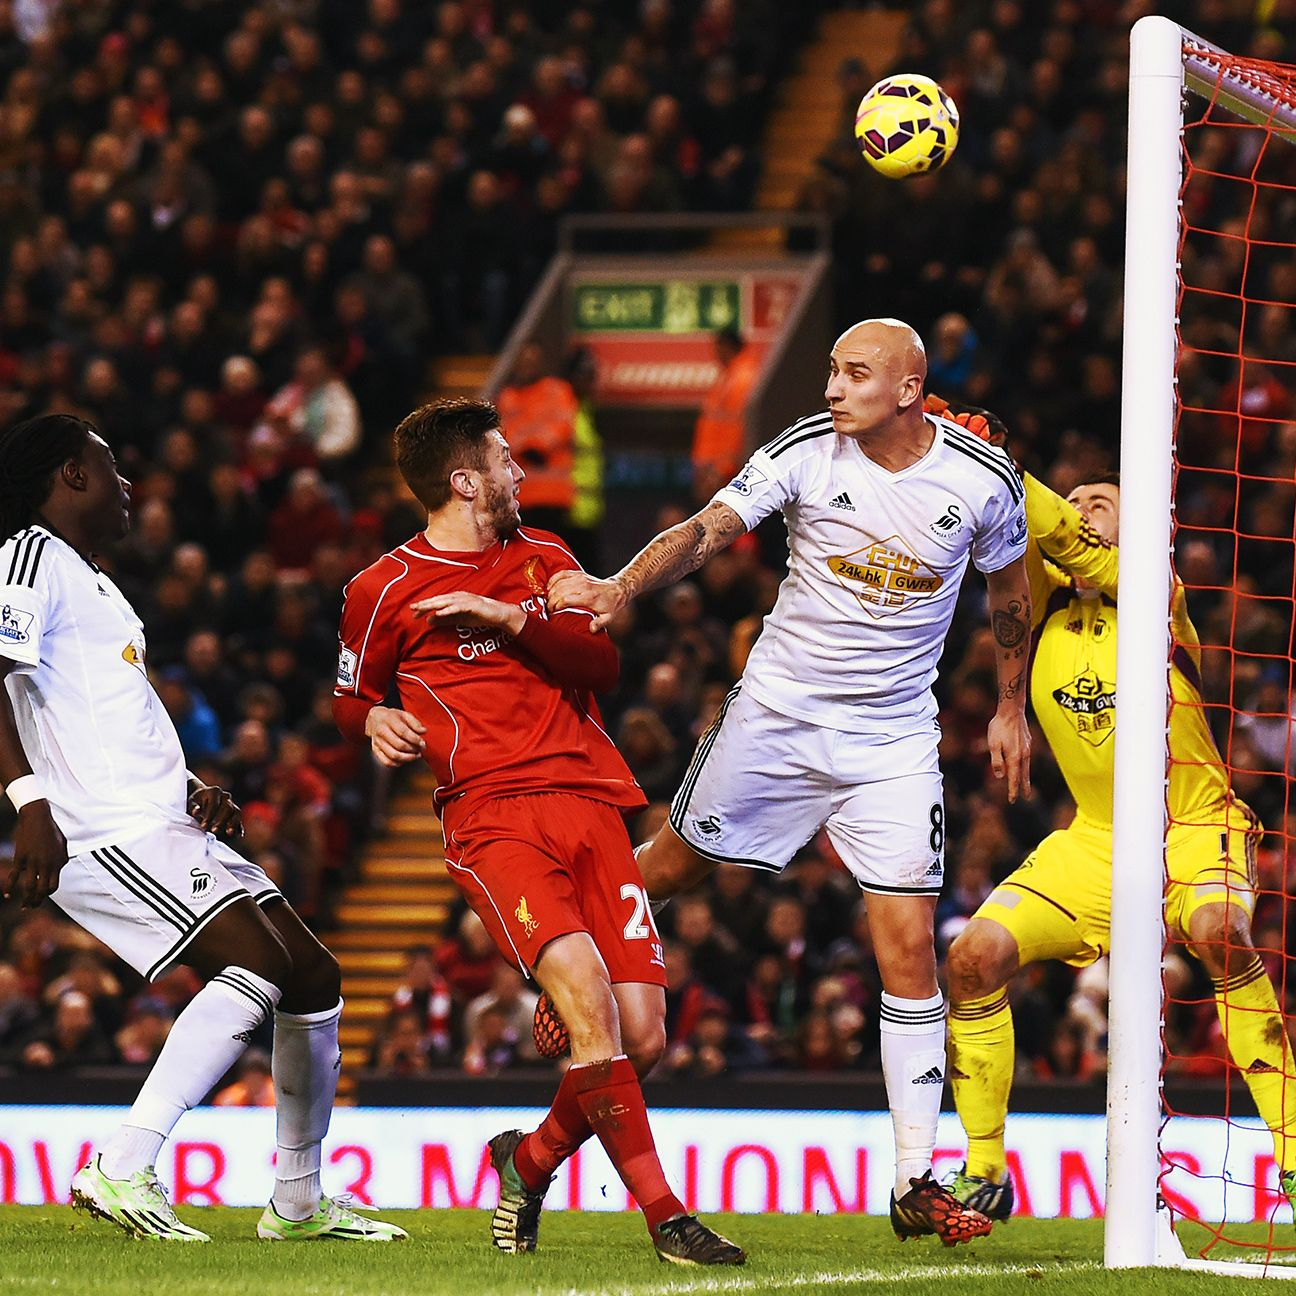 Jonjo Shelvey's miserable night at Anfield was capped by his second half own goal.